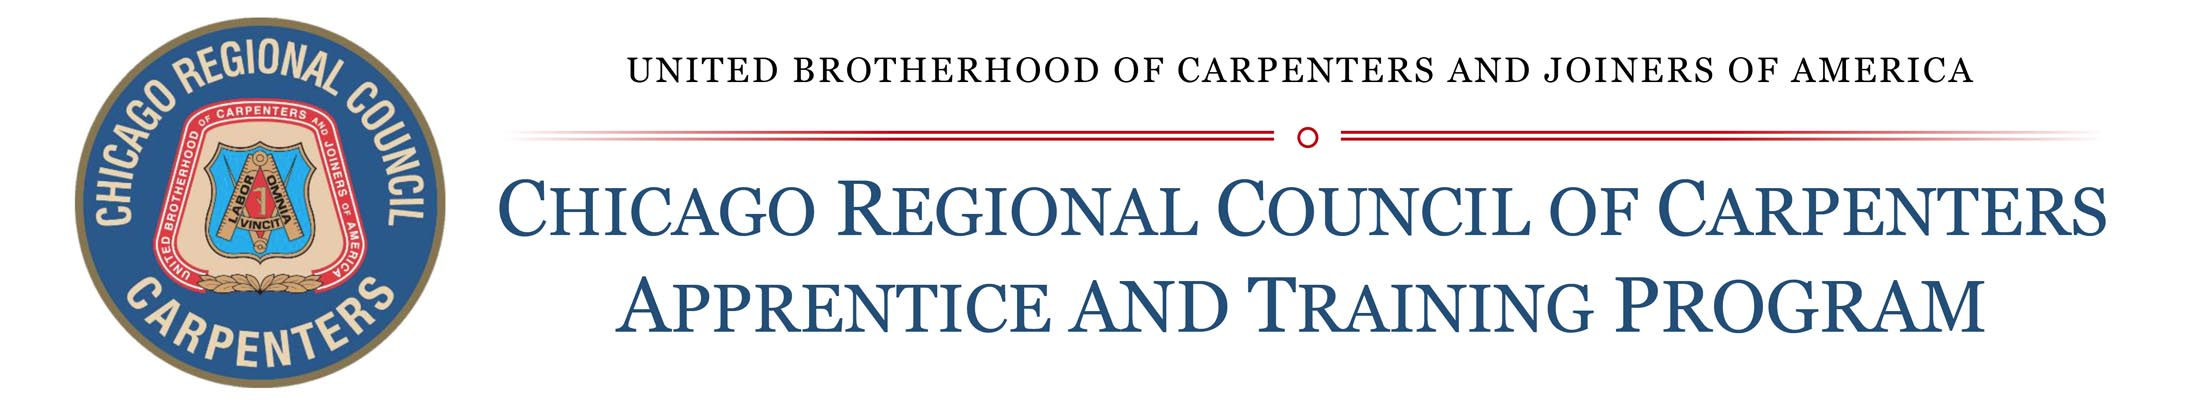 Chicago Regional Council of Carpenters Logo